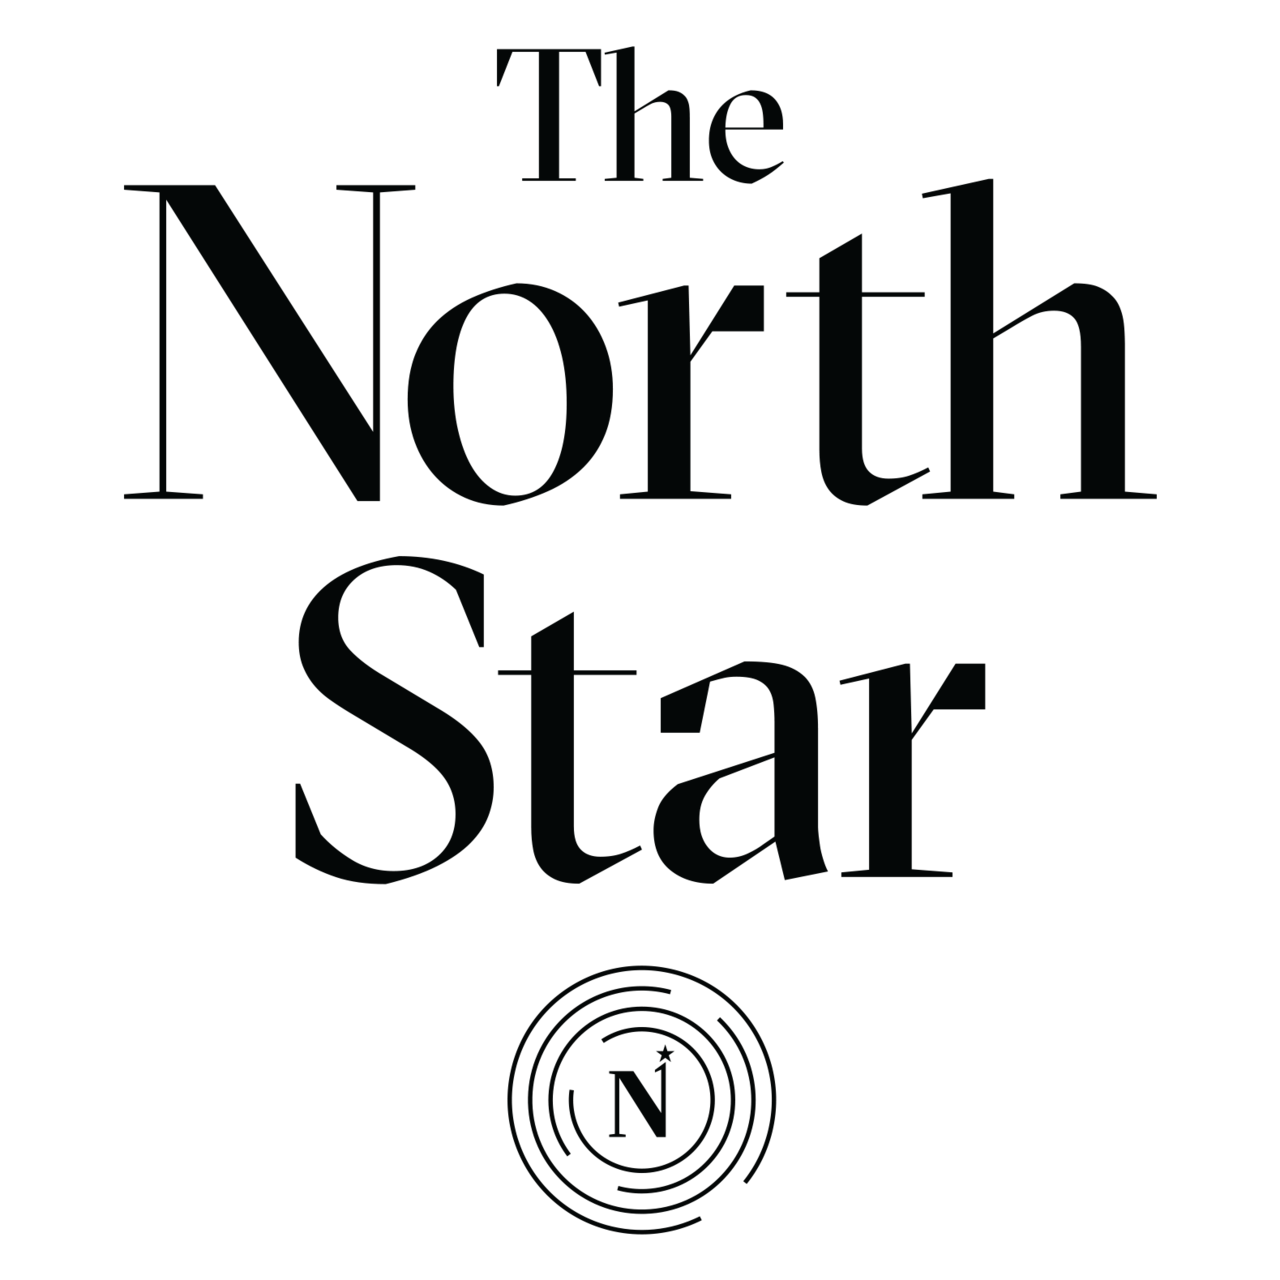 The North Star with Shaun King